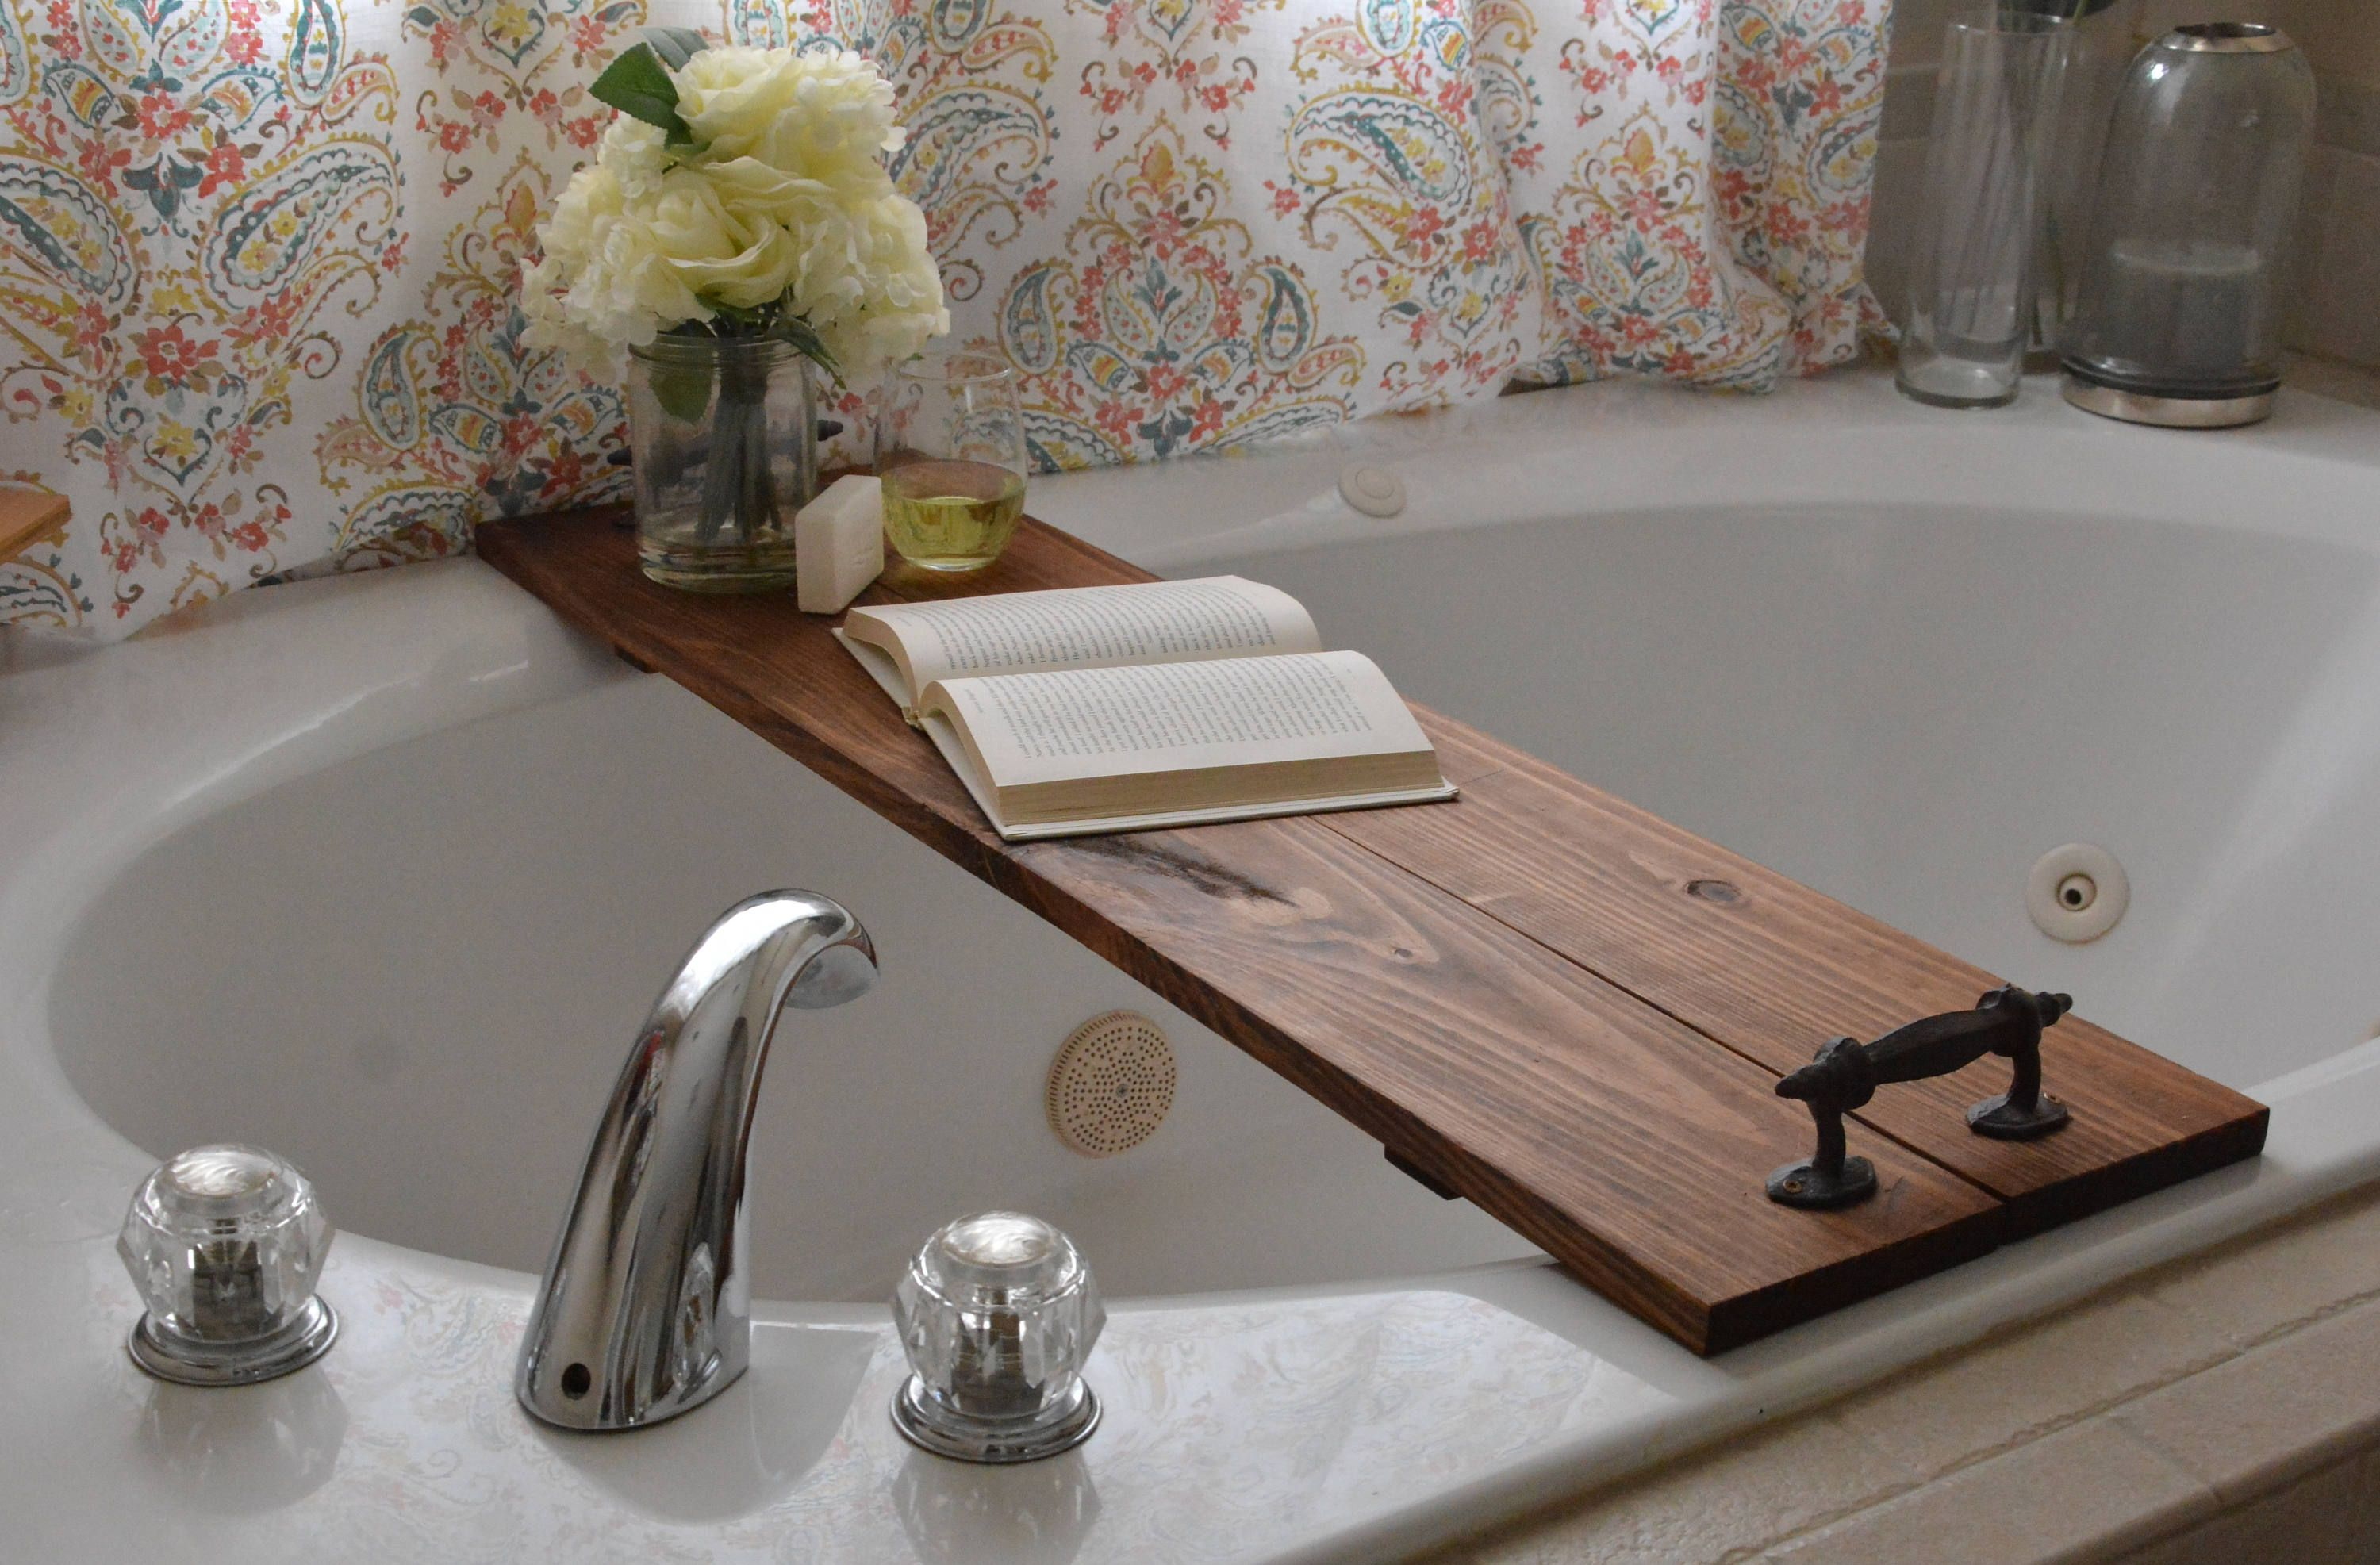 Large Bath Caddy/Large Bathtub Caddy/Rustic Bath Tray/Rustic Bathtub ...